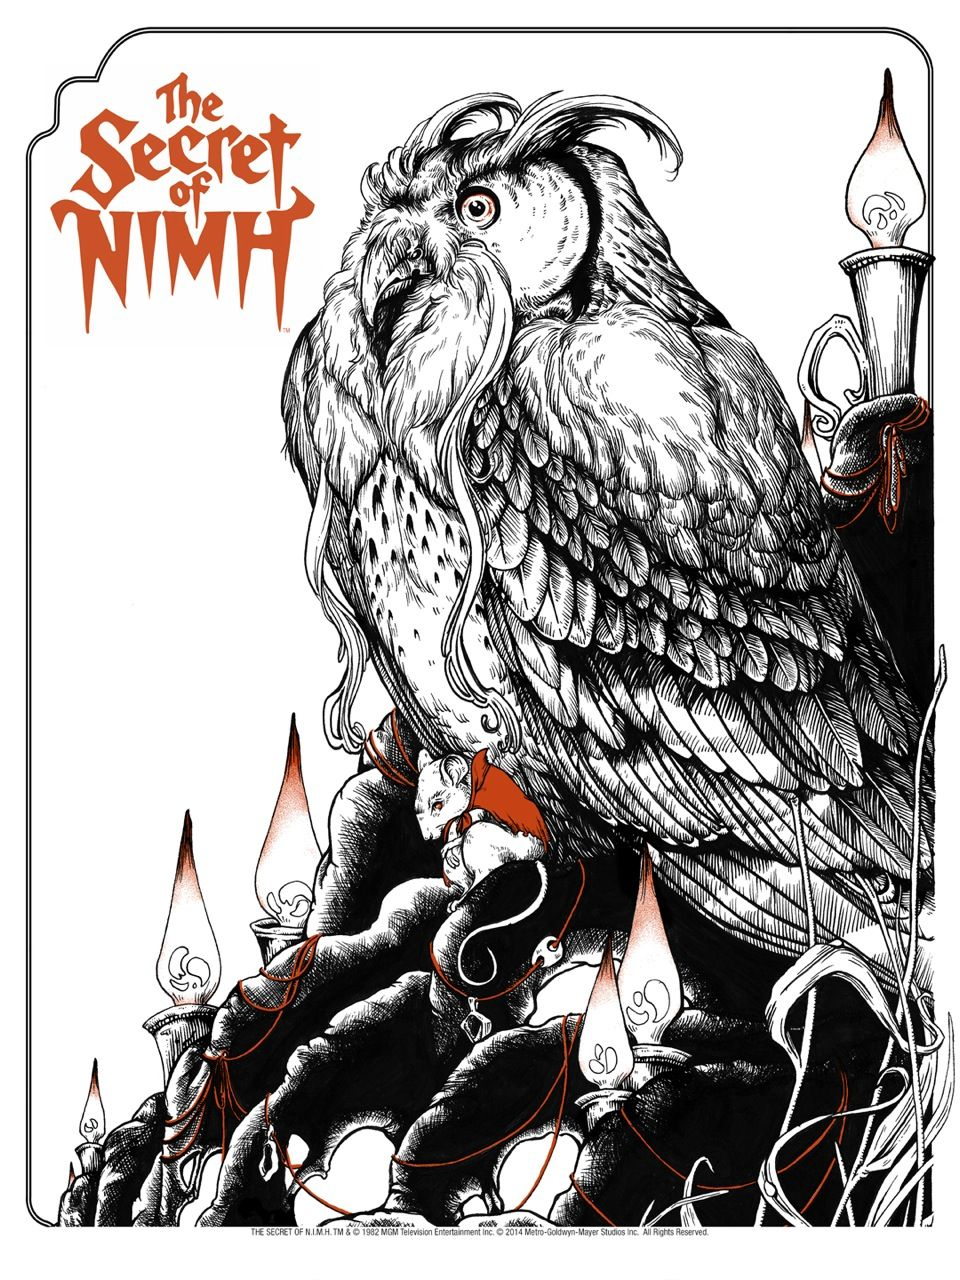 The Secret Of Nimh Posters And Letterpress From Odd City